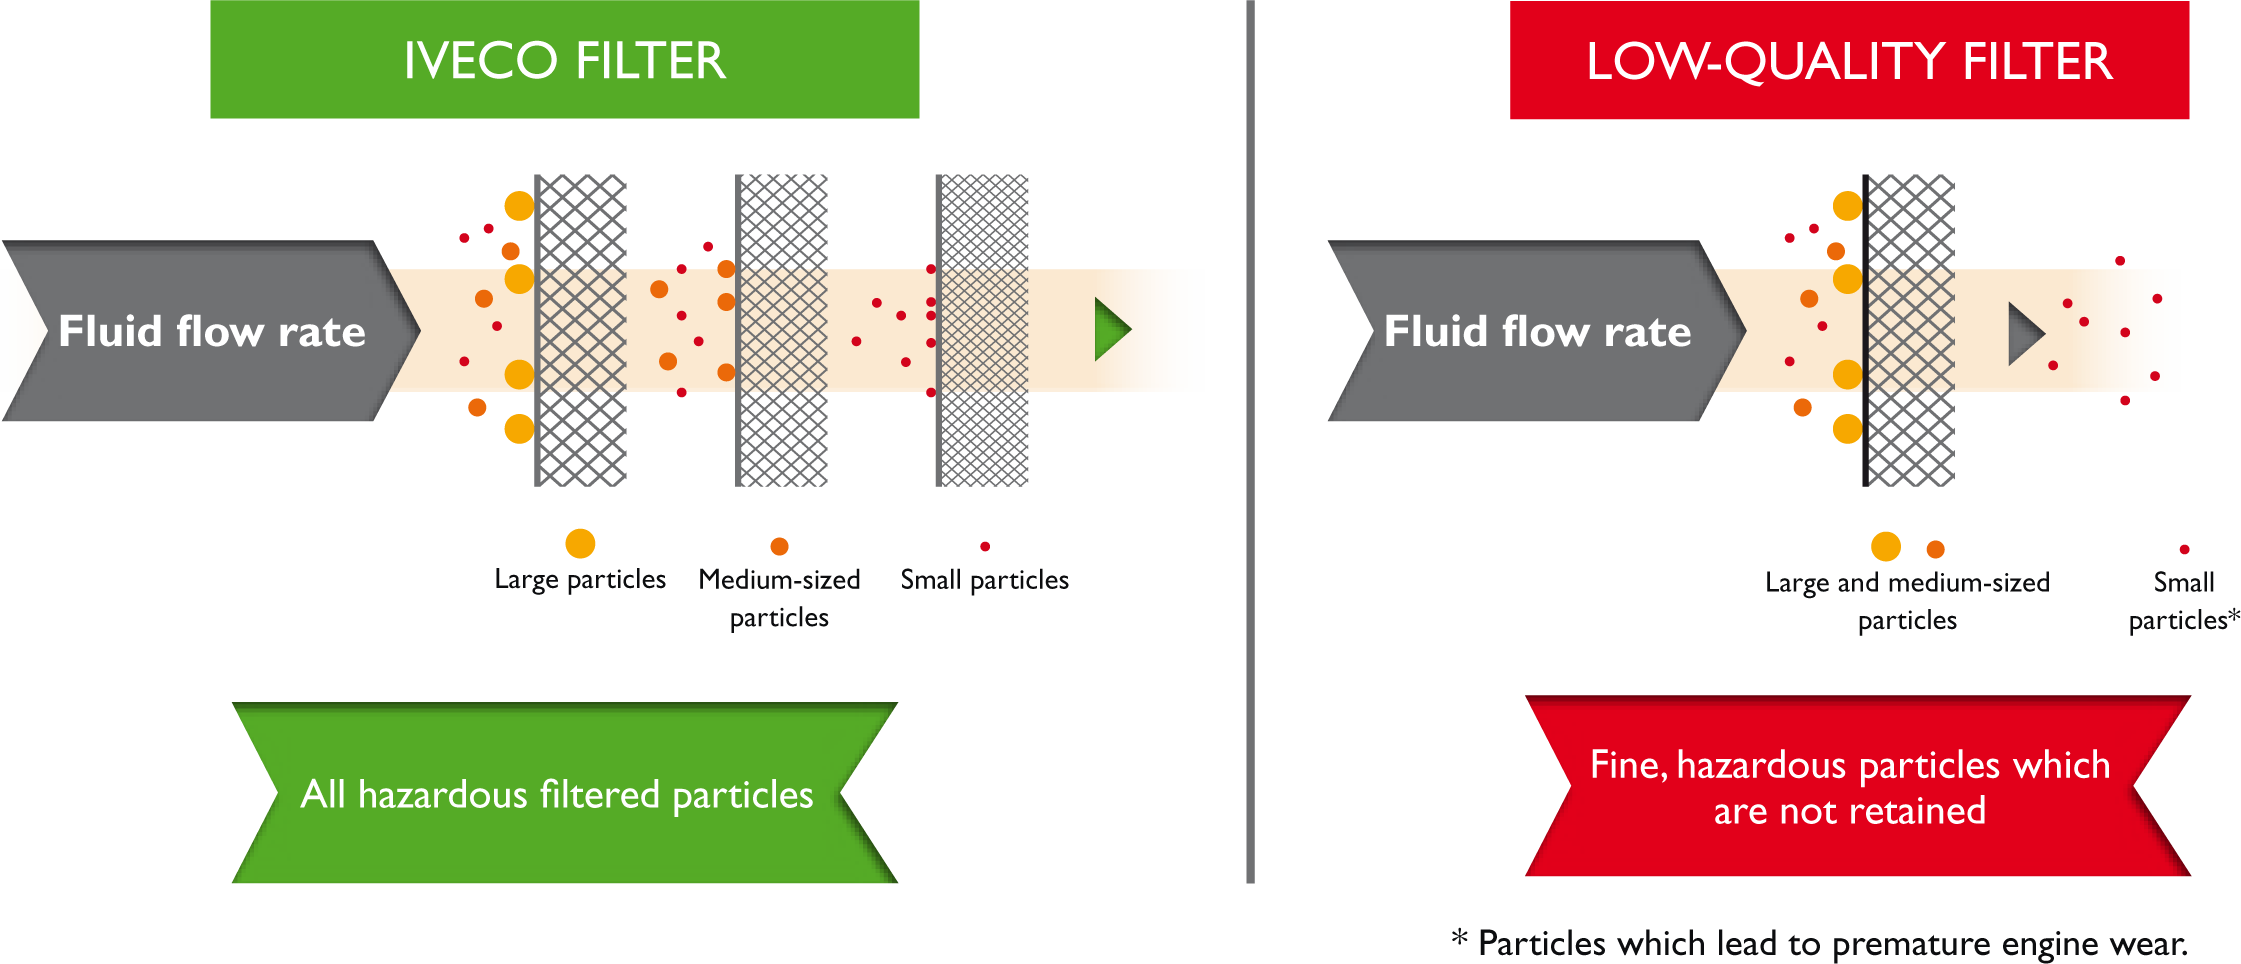 Fuel Filters Iveco Text Flow Filter To Ensure That These 3 Properties Are Present The Quality Of Filtering Element Is Crucialiveco Uses A Multi Layer Material Which Stops